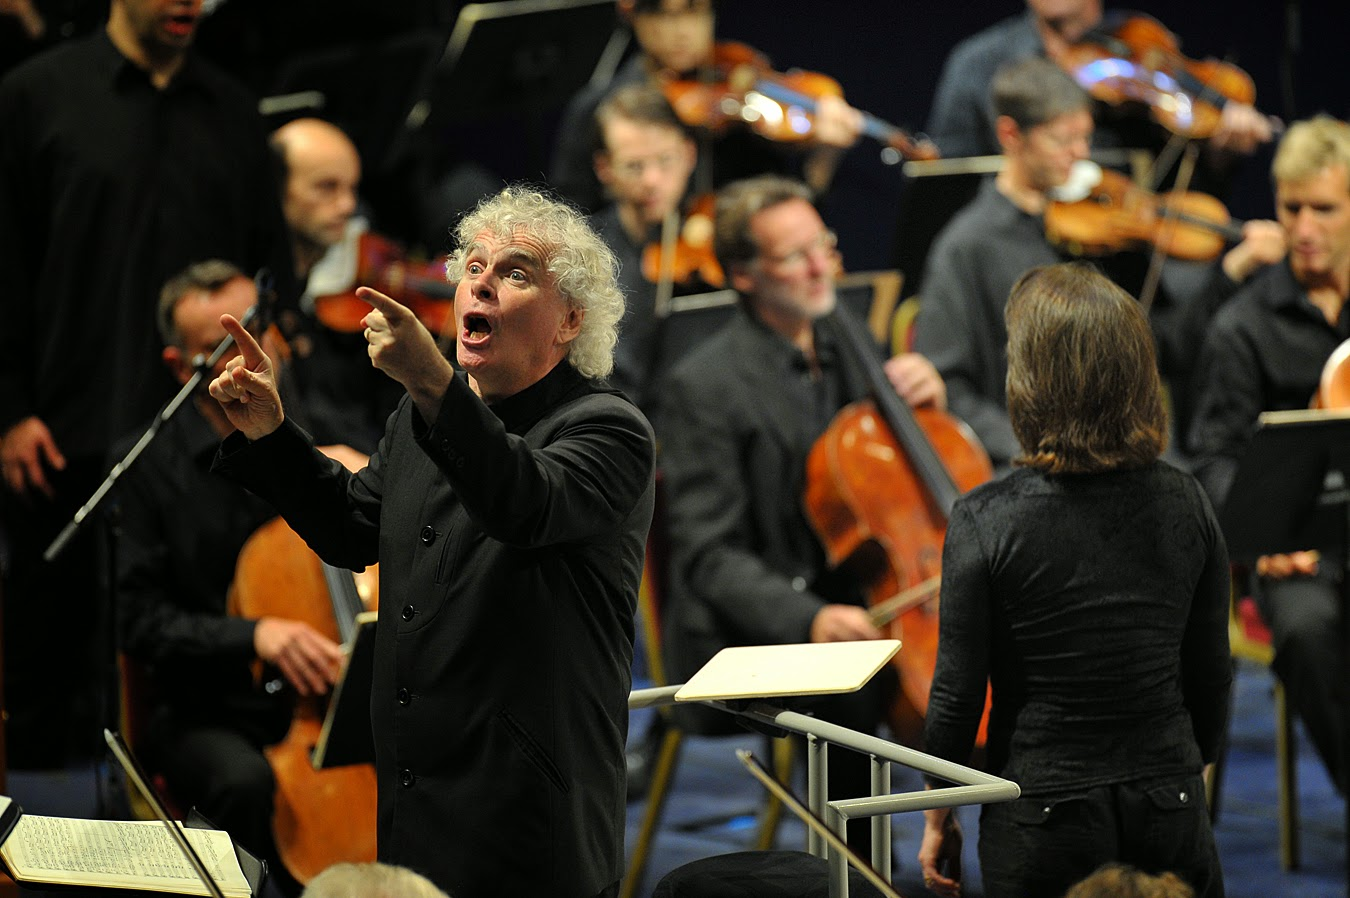 Simon Rattle and the Berlin Philharmonic Orchestra in Bach's St Matthew Passion at the BBC Proms - photo credit BBC / Chris Christodoulou